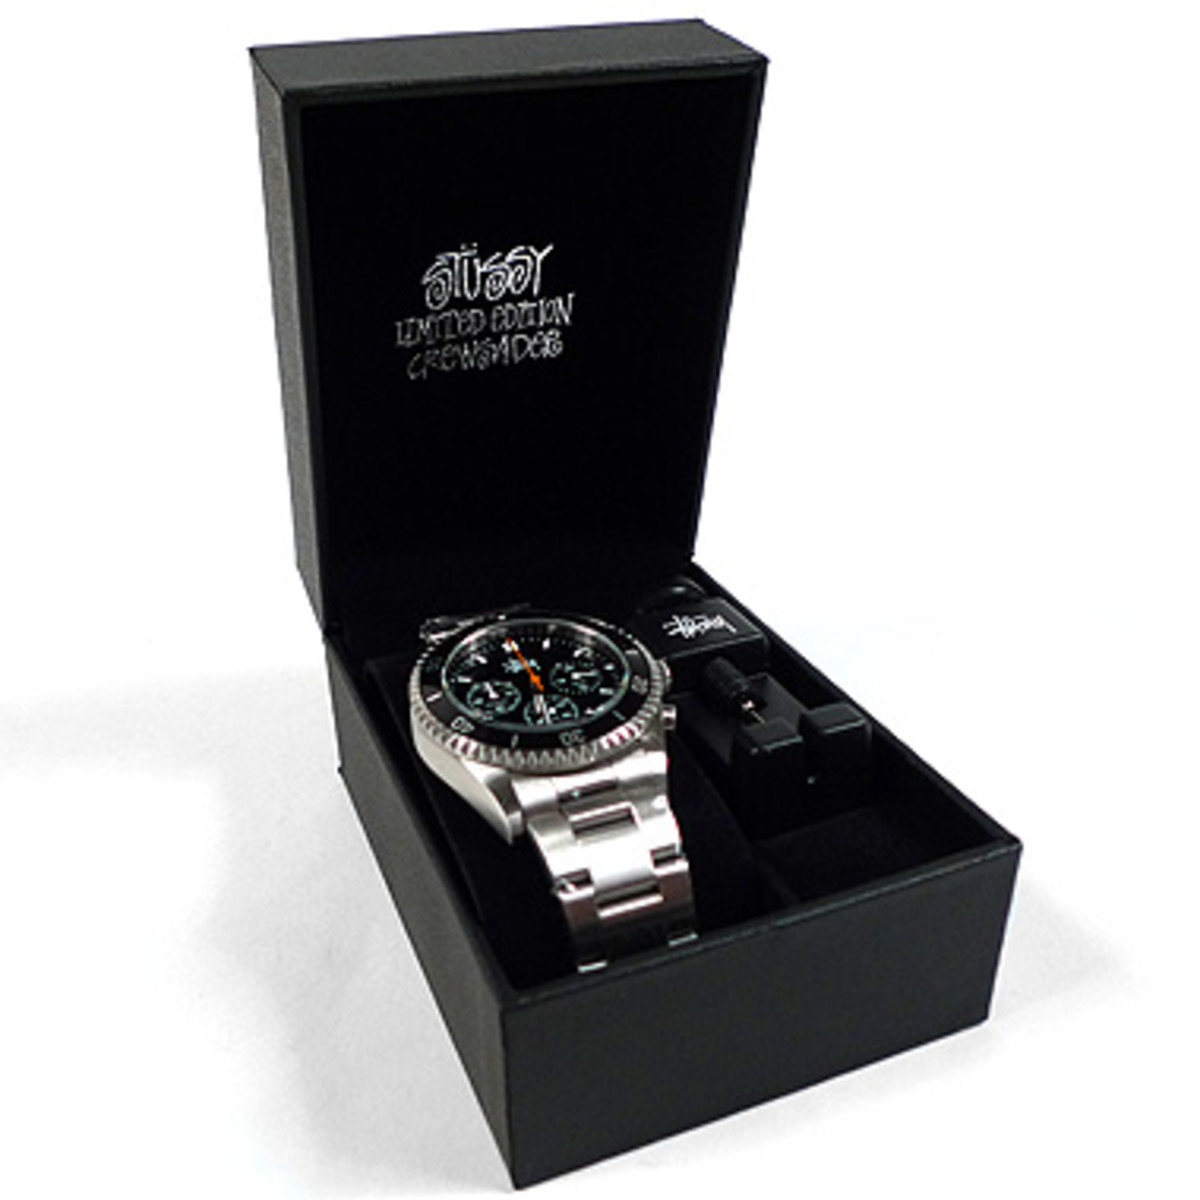 stussy_chronometer_watch_2